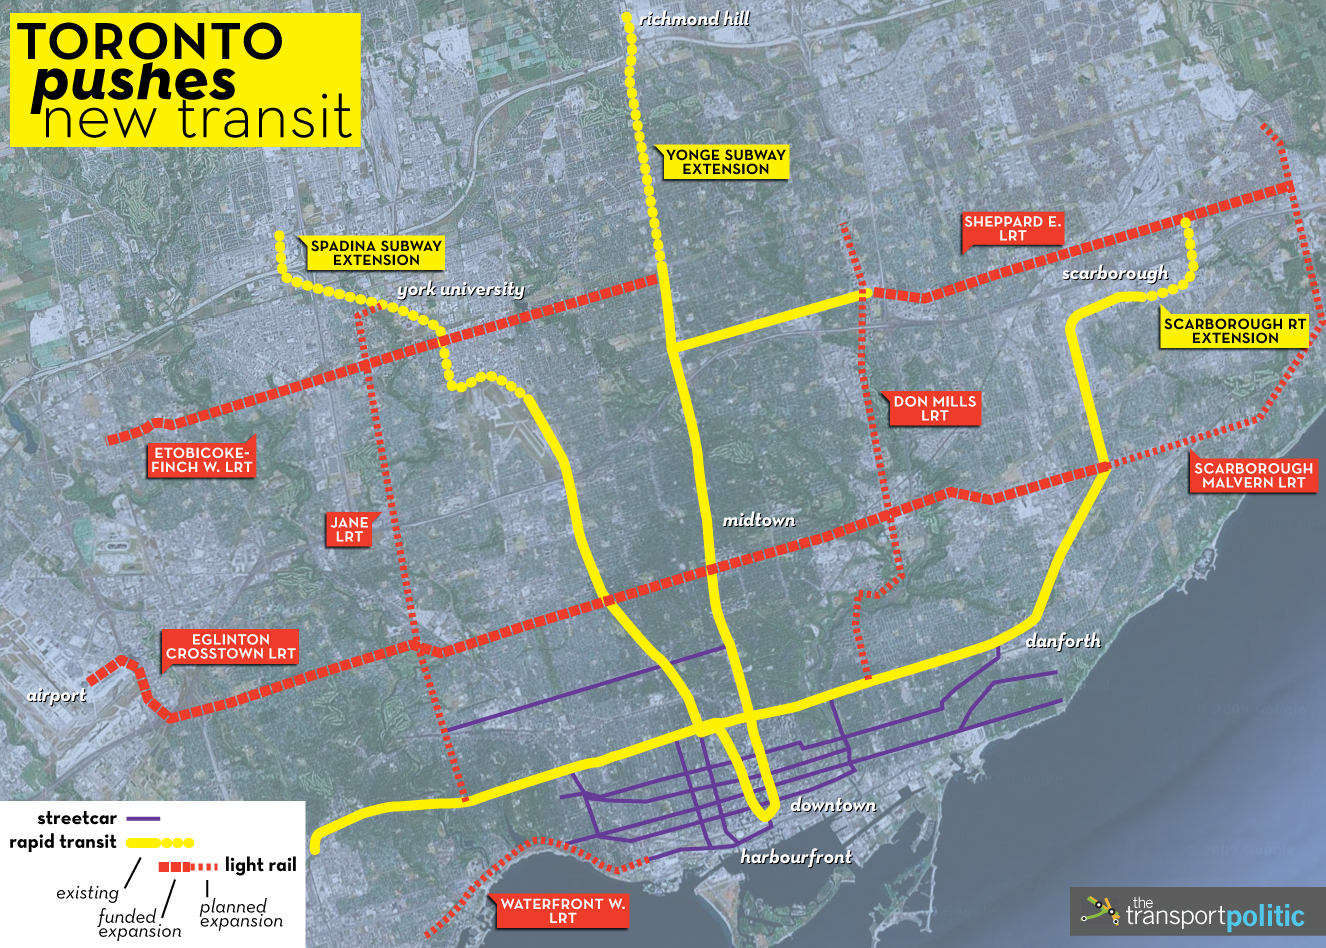 nyc bus and subway maps with Ontario Agrees To Fund Yet Another Lrt Line In Toronto on Nycmps further Borough In My Hands Maps Of The Bronx moreover PennStation in addition Top Ten Underground Transit Systems also Redesigning The Nyc Bus Map.